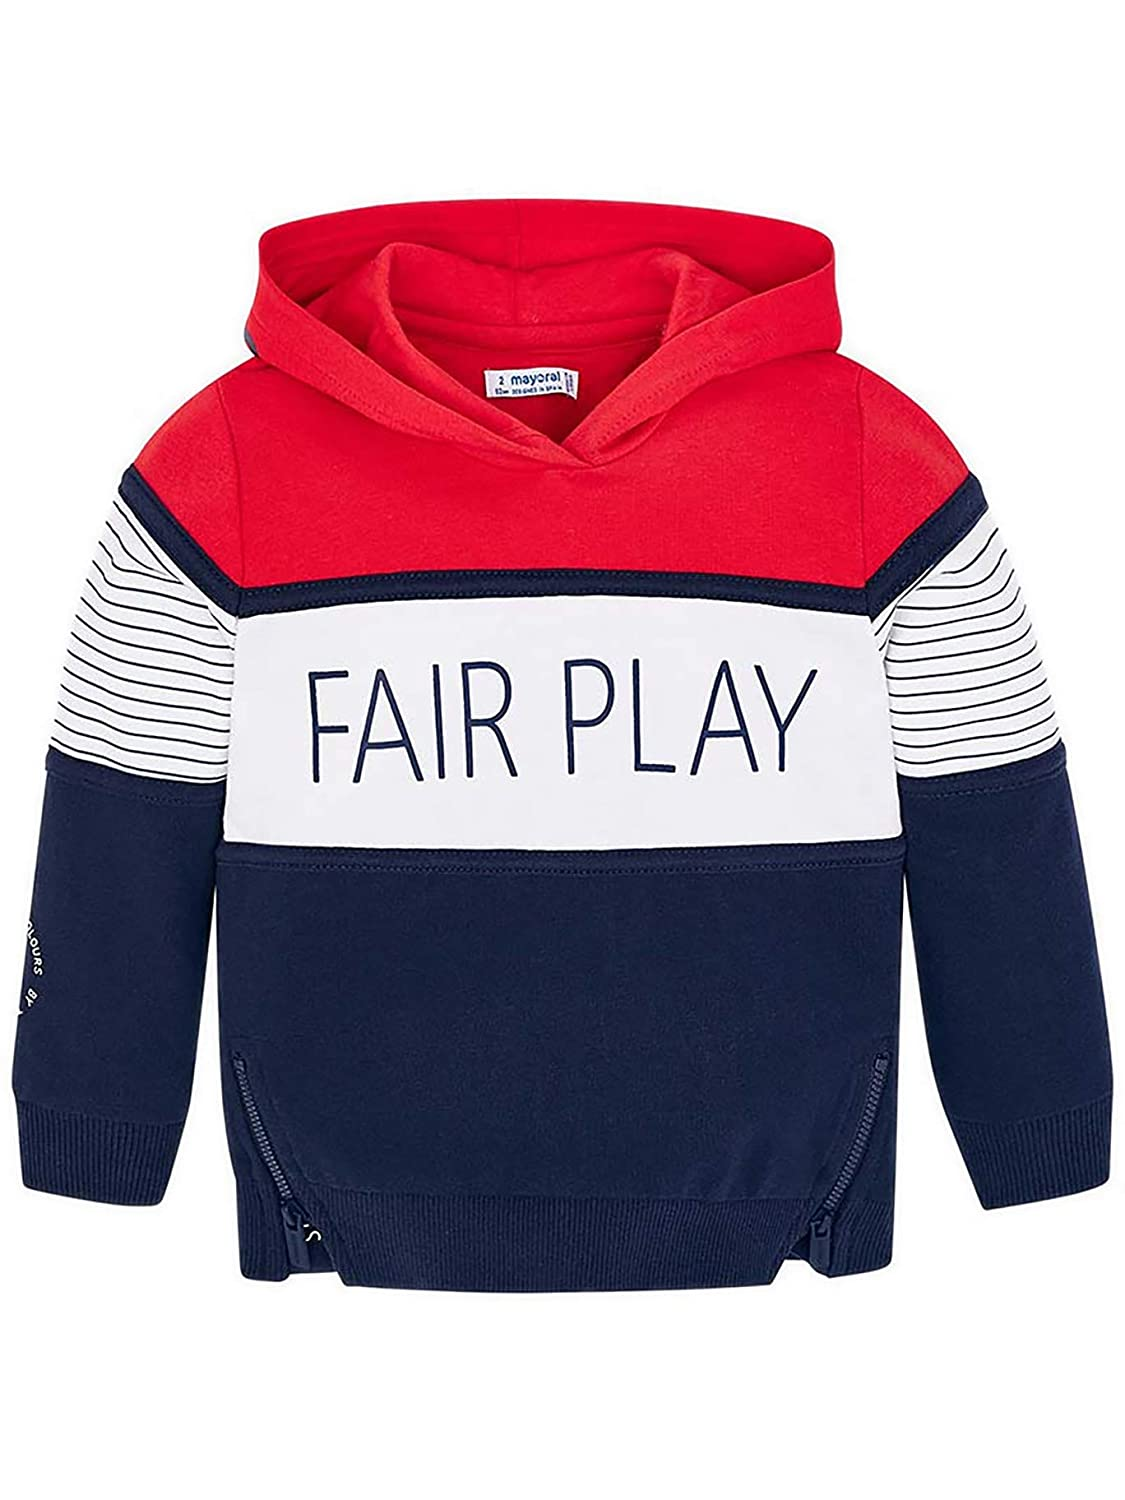 Contrast Pullover for Boys 3419 Mayoral Red